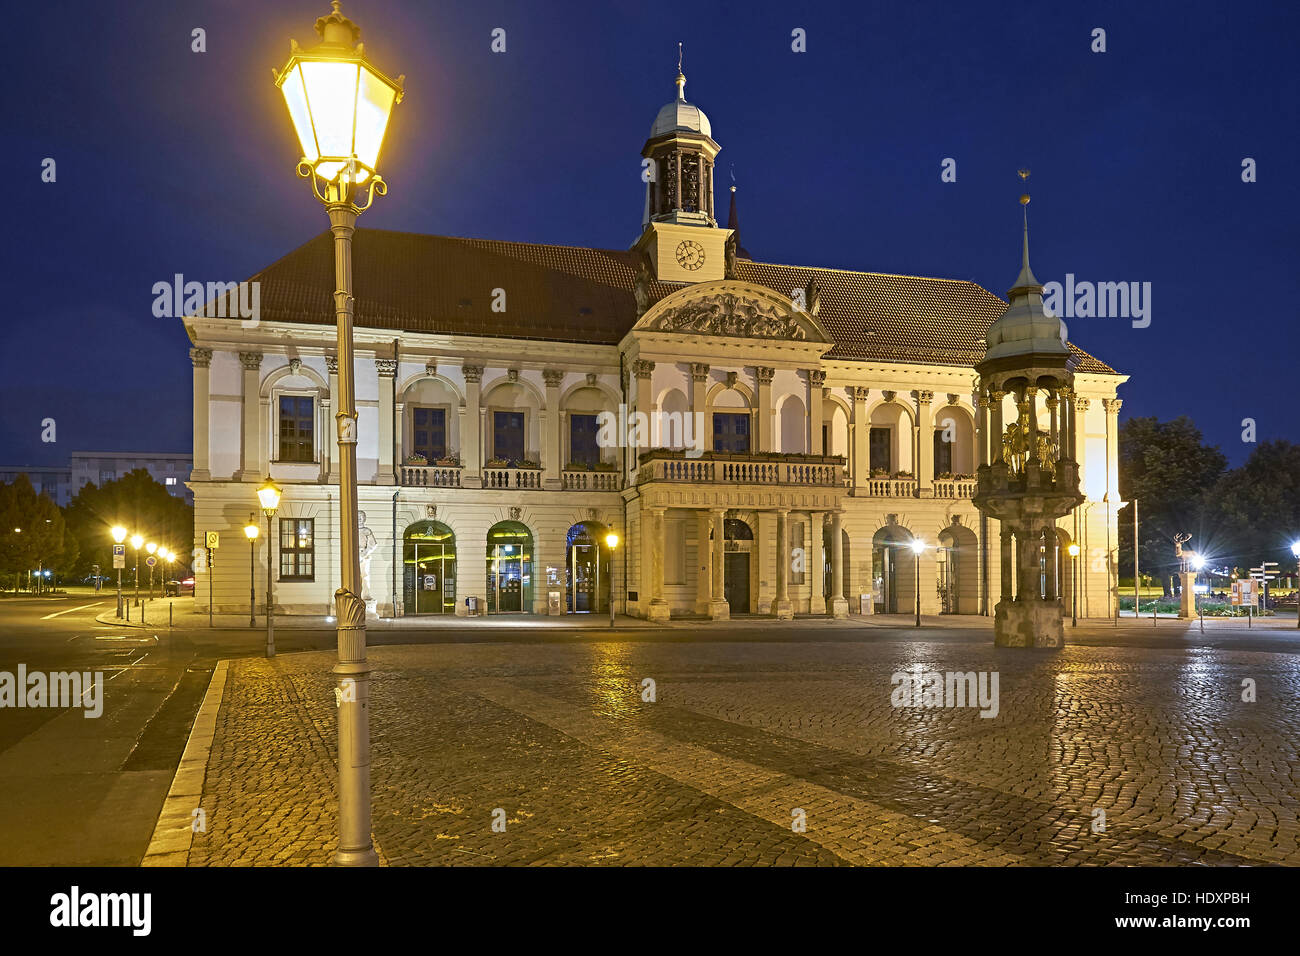 City Hall at the Old Market with Magdeburg Horseman, Magdeburg, Saxony-Anhalt, Germany - Stock Image